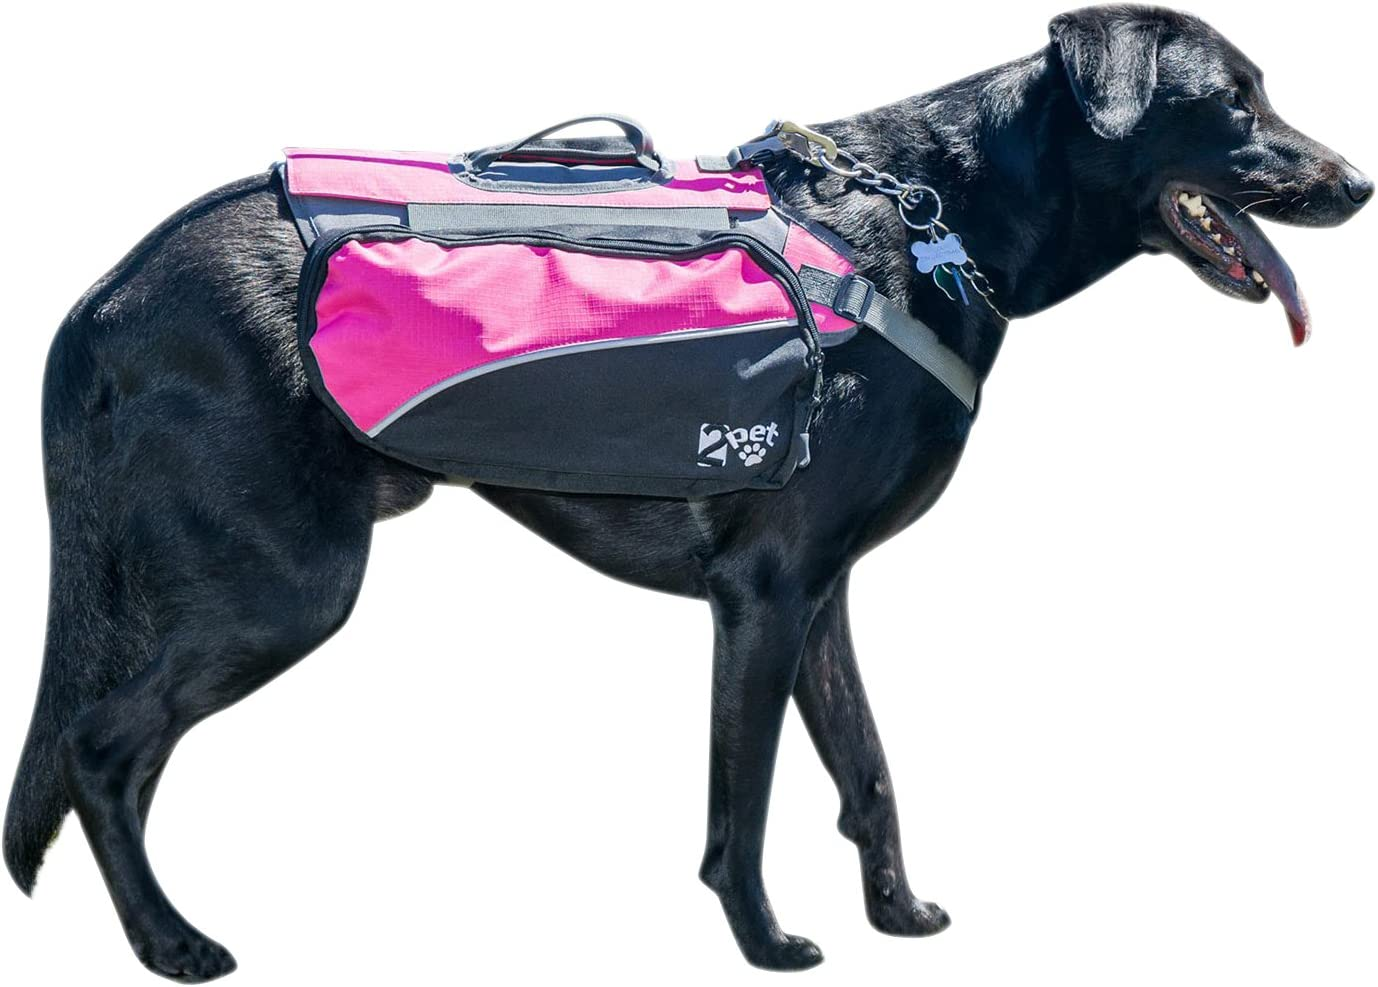 2PET Dog Backpack for Hiking Saddlebag Compact Dogs Max 41% OFF Cheap mail order specialty store Adju